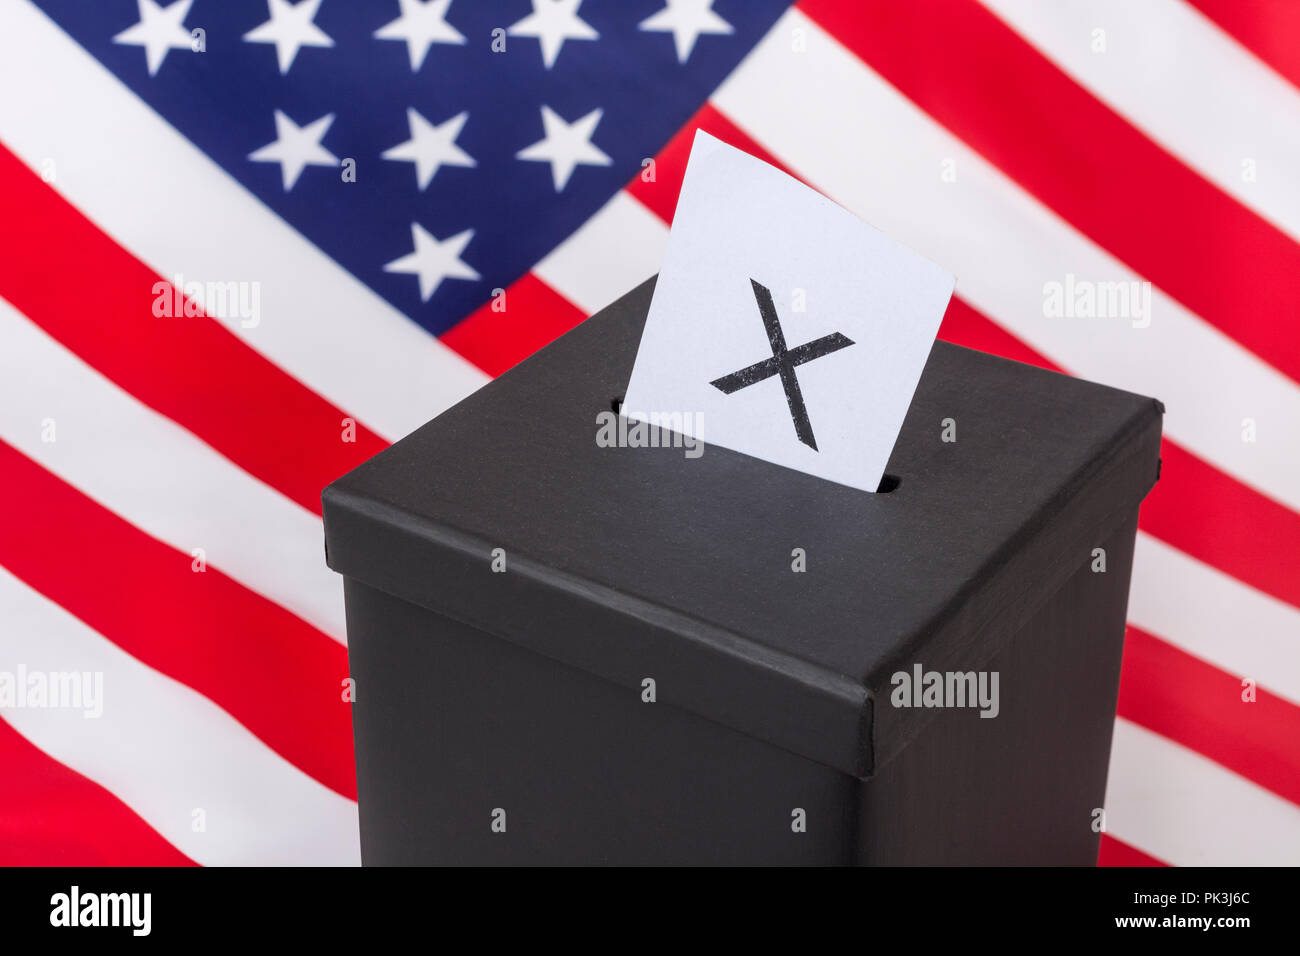 2018 US Midterm Election / Midterm elections America in November 2018, 2020 US Elections. - Stock Image